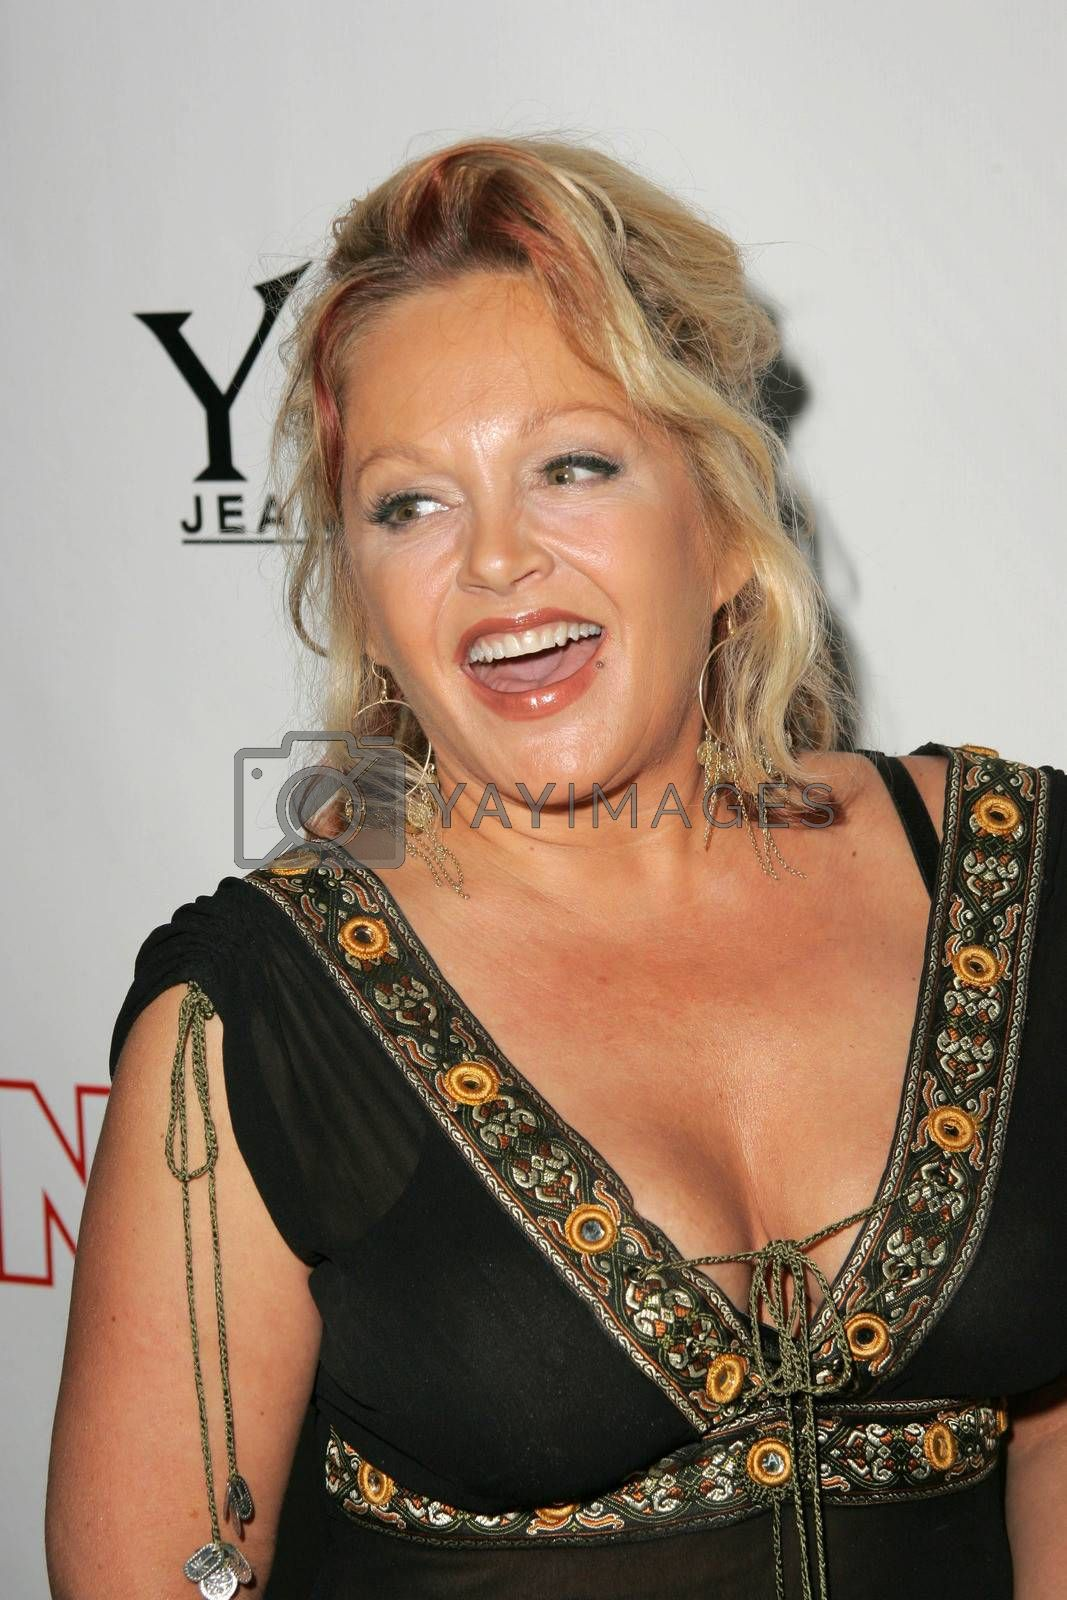 Charlene Tilton at the In Touch Presents Pets And Their Stars Party, Cabana Club, Hollywood, CA 09-21-05